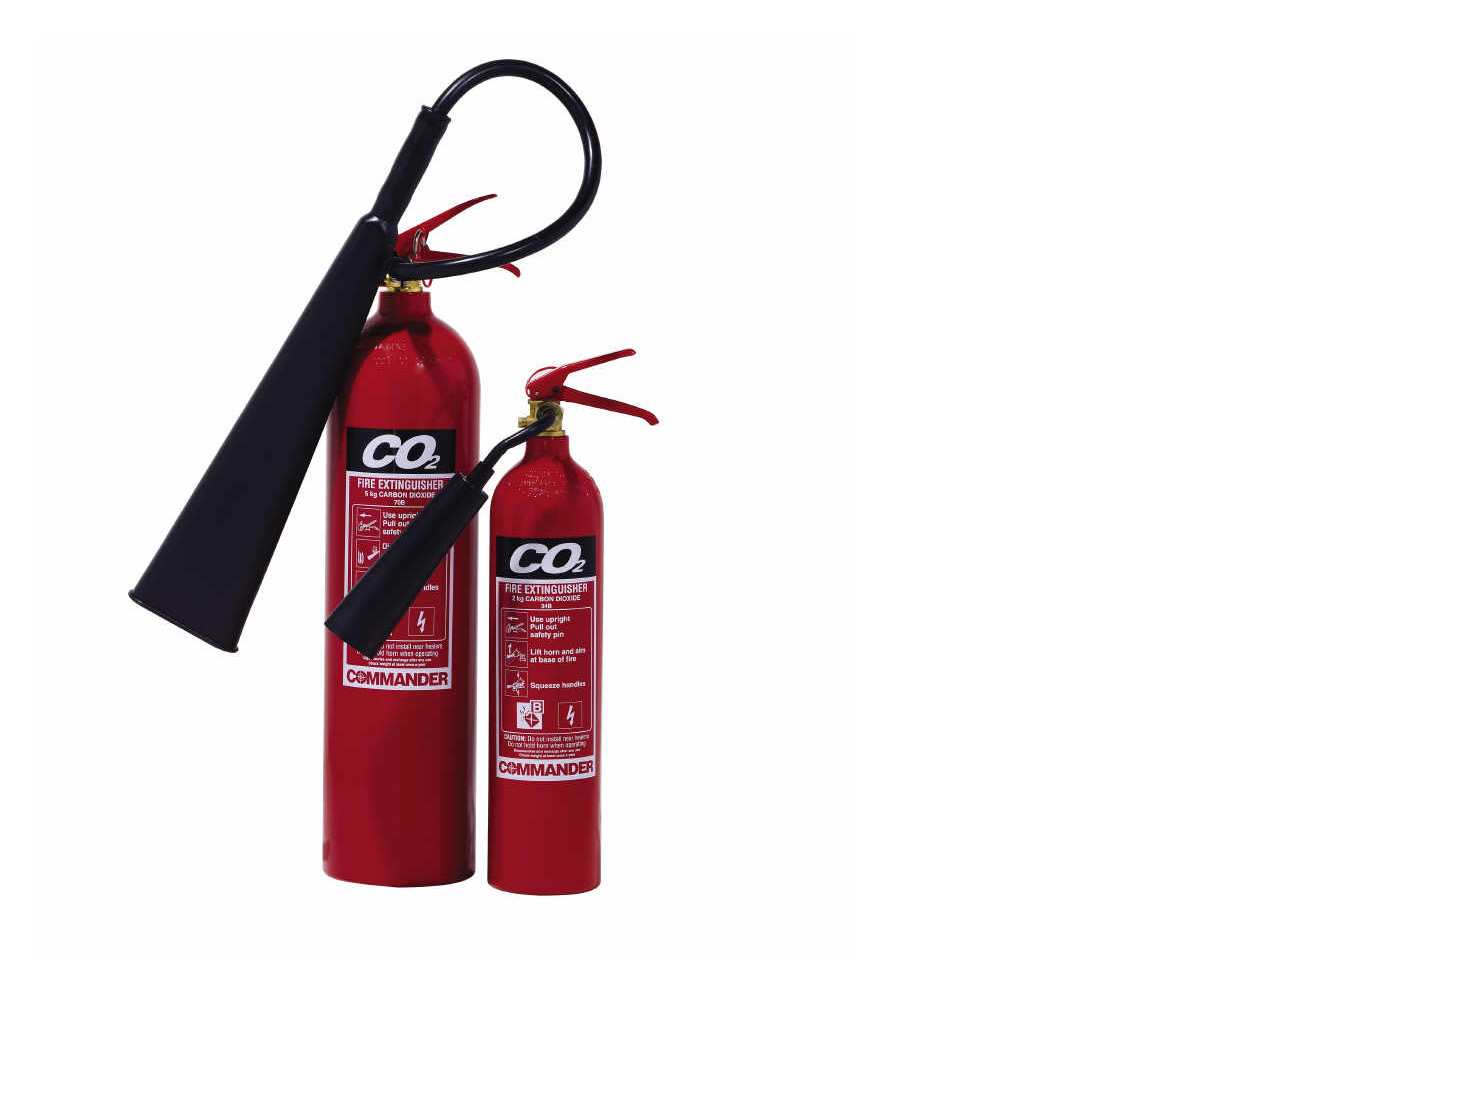 <div class='slider_caption'>		 <h1>We provide a fire extinguisher rental service, which allows you to keep costs down while maintaining the service to the highest possible standards.</h1> 			<a class='slider-readmore' href='https://fireextinguishers.ie/fire-extinguisher-rental/'>Fire Extinguisher Rental</a>